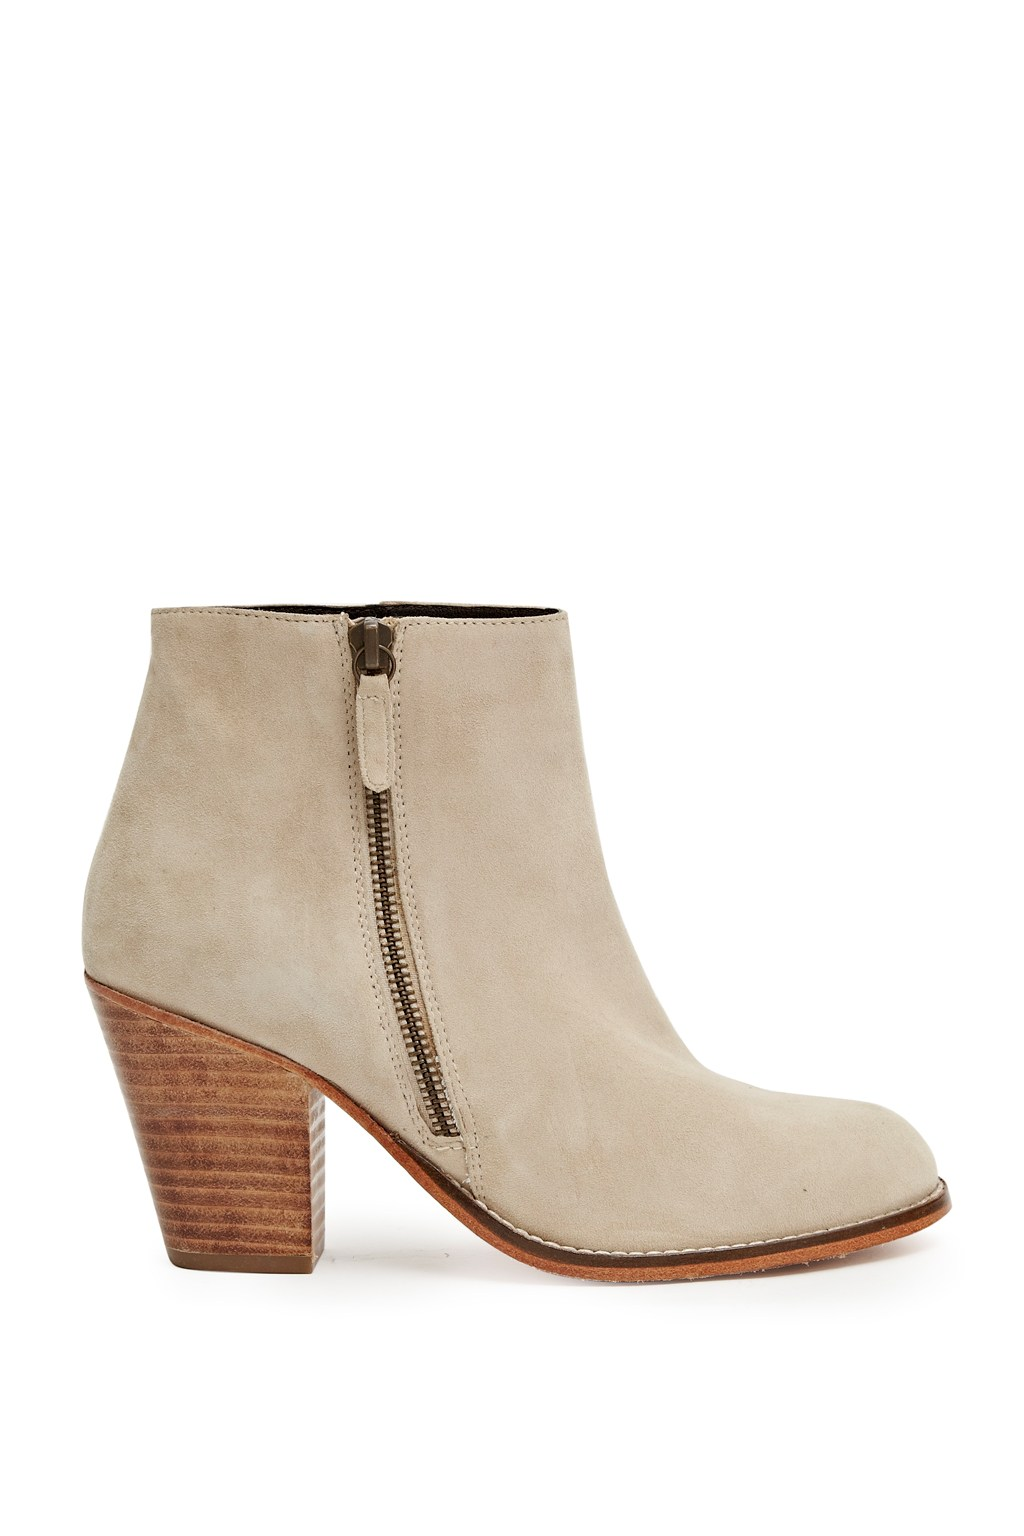 Find ankle boots uk at ShopStyle. Shop the latest collection of ankle boots uk from the most popular stores - all in one place. MM6 MAISON MARGIELA Ankle Boots with Cup Heel $ Get a Sale Alert Extra 20% Off: TAKE20 at The Dreslyn The Dreslyn.